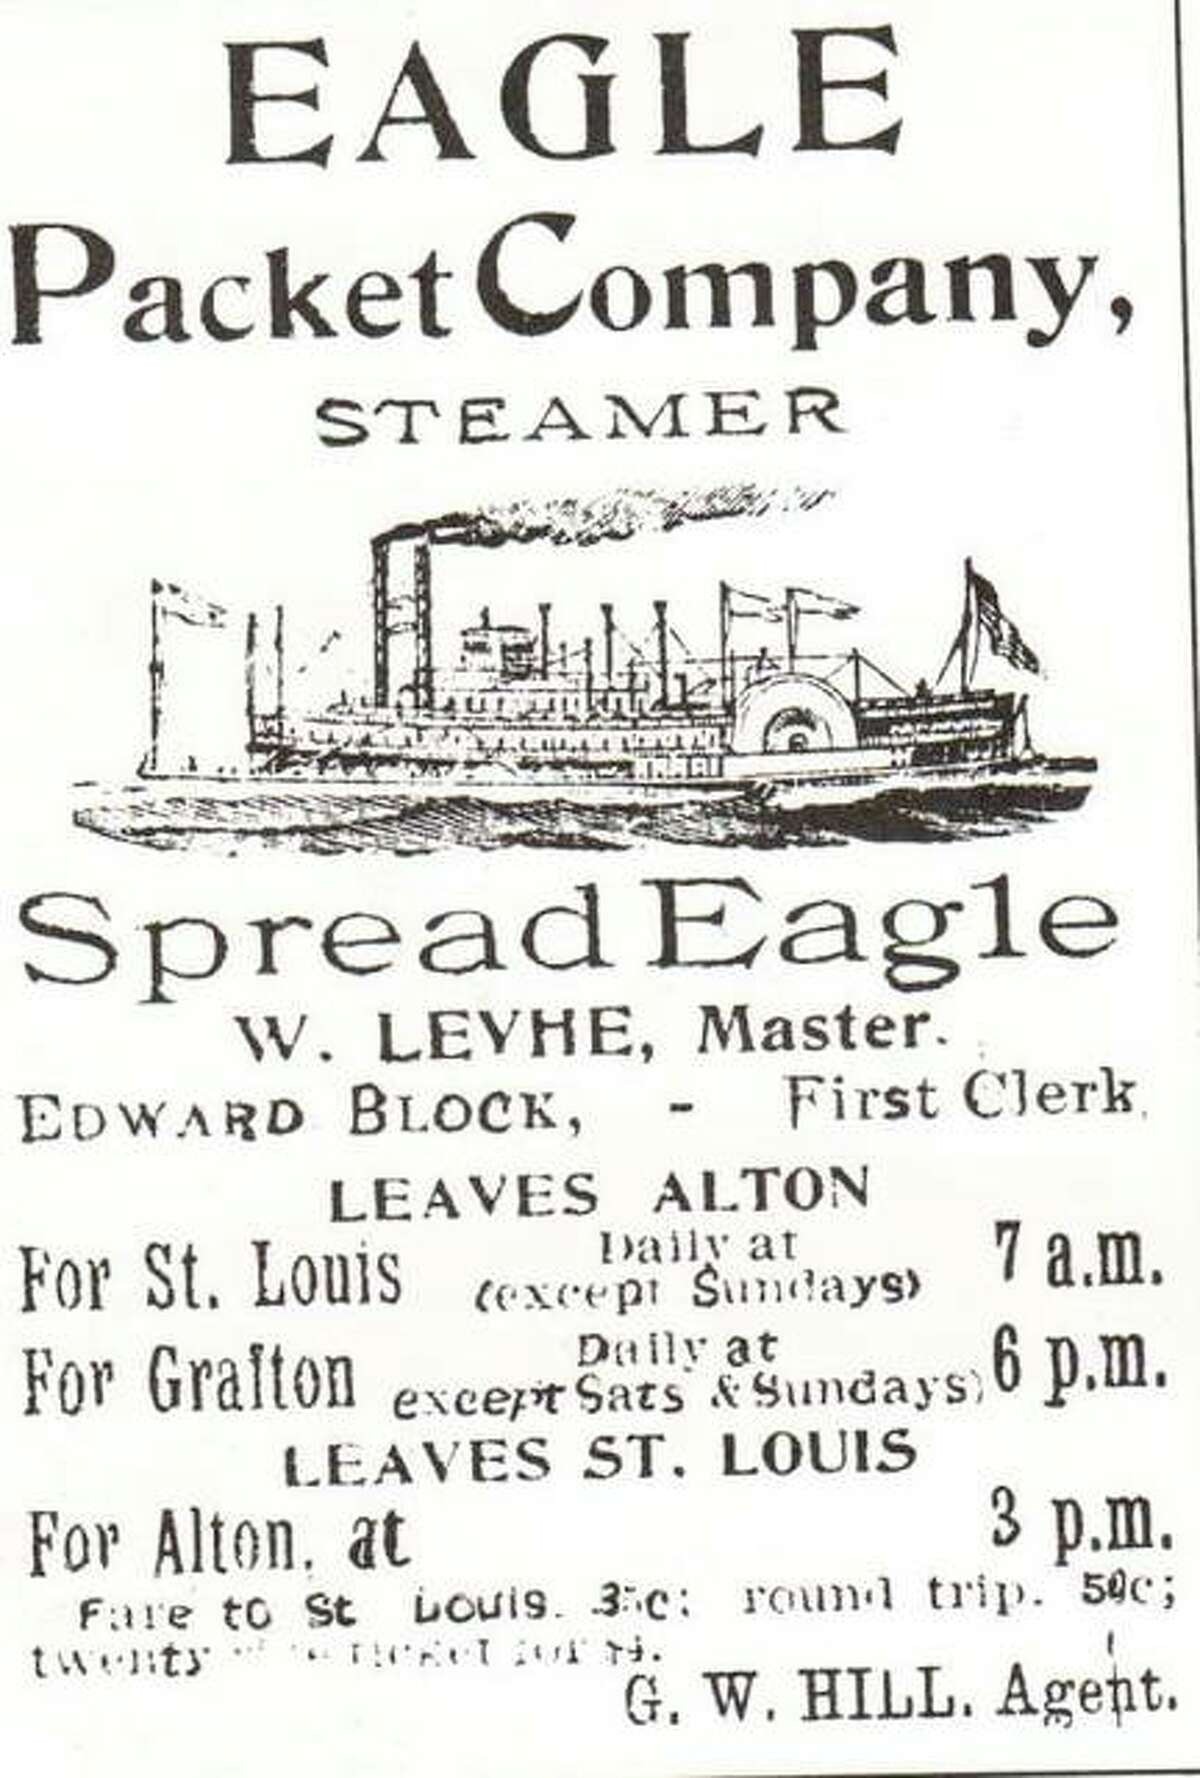 """The Eagle Packet Company originated in Quincy, but moved to Alton in 1874 in an effort to increase business. The Eagle Packet Co. was successful in competing with local lines and soon had four steamers operating on the Mississippi out of Alton. The """"Golden Eagle"""" was the final wooden hull, sternwheel steamboat to ply the Mississippi. She served as an excursion boat when the packet trade was no longer profitable. The boat sank at Grand Tower in 1947. The pilothouse was salvaged and is part of a display in the Jefferson Memorial Museum in St. Louis."""